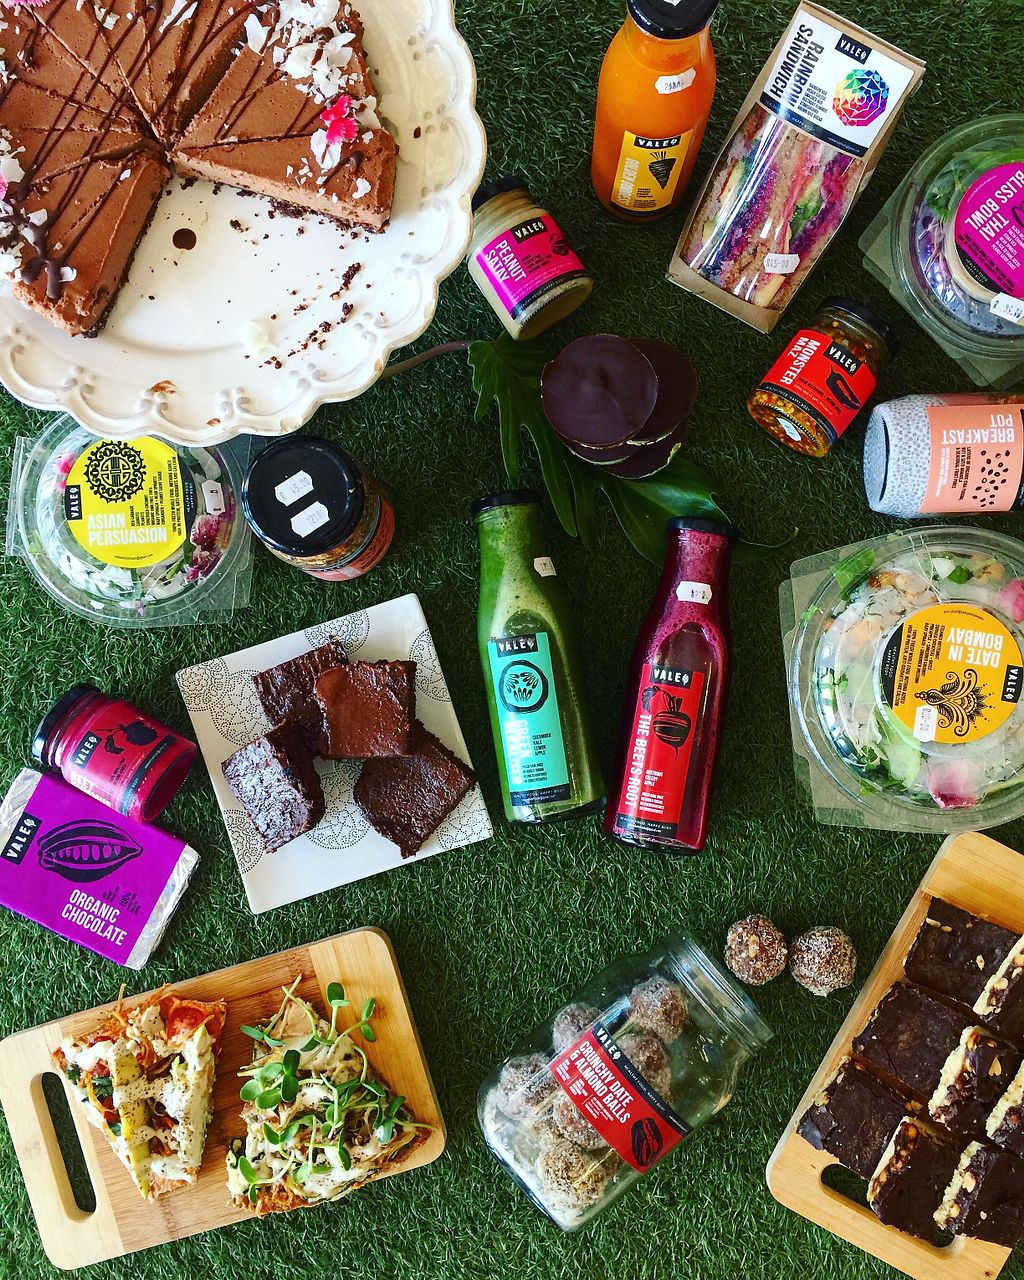 "Photo of Valeo  by <a href=""/members/profile/ThisisART"">ThisisART</a> <br/>Assorted cakes, juices and grab and go meals <br/> April 20, 2018  - <a href='/contact/abuse/image/117450/388412'>Report</a>"